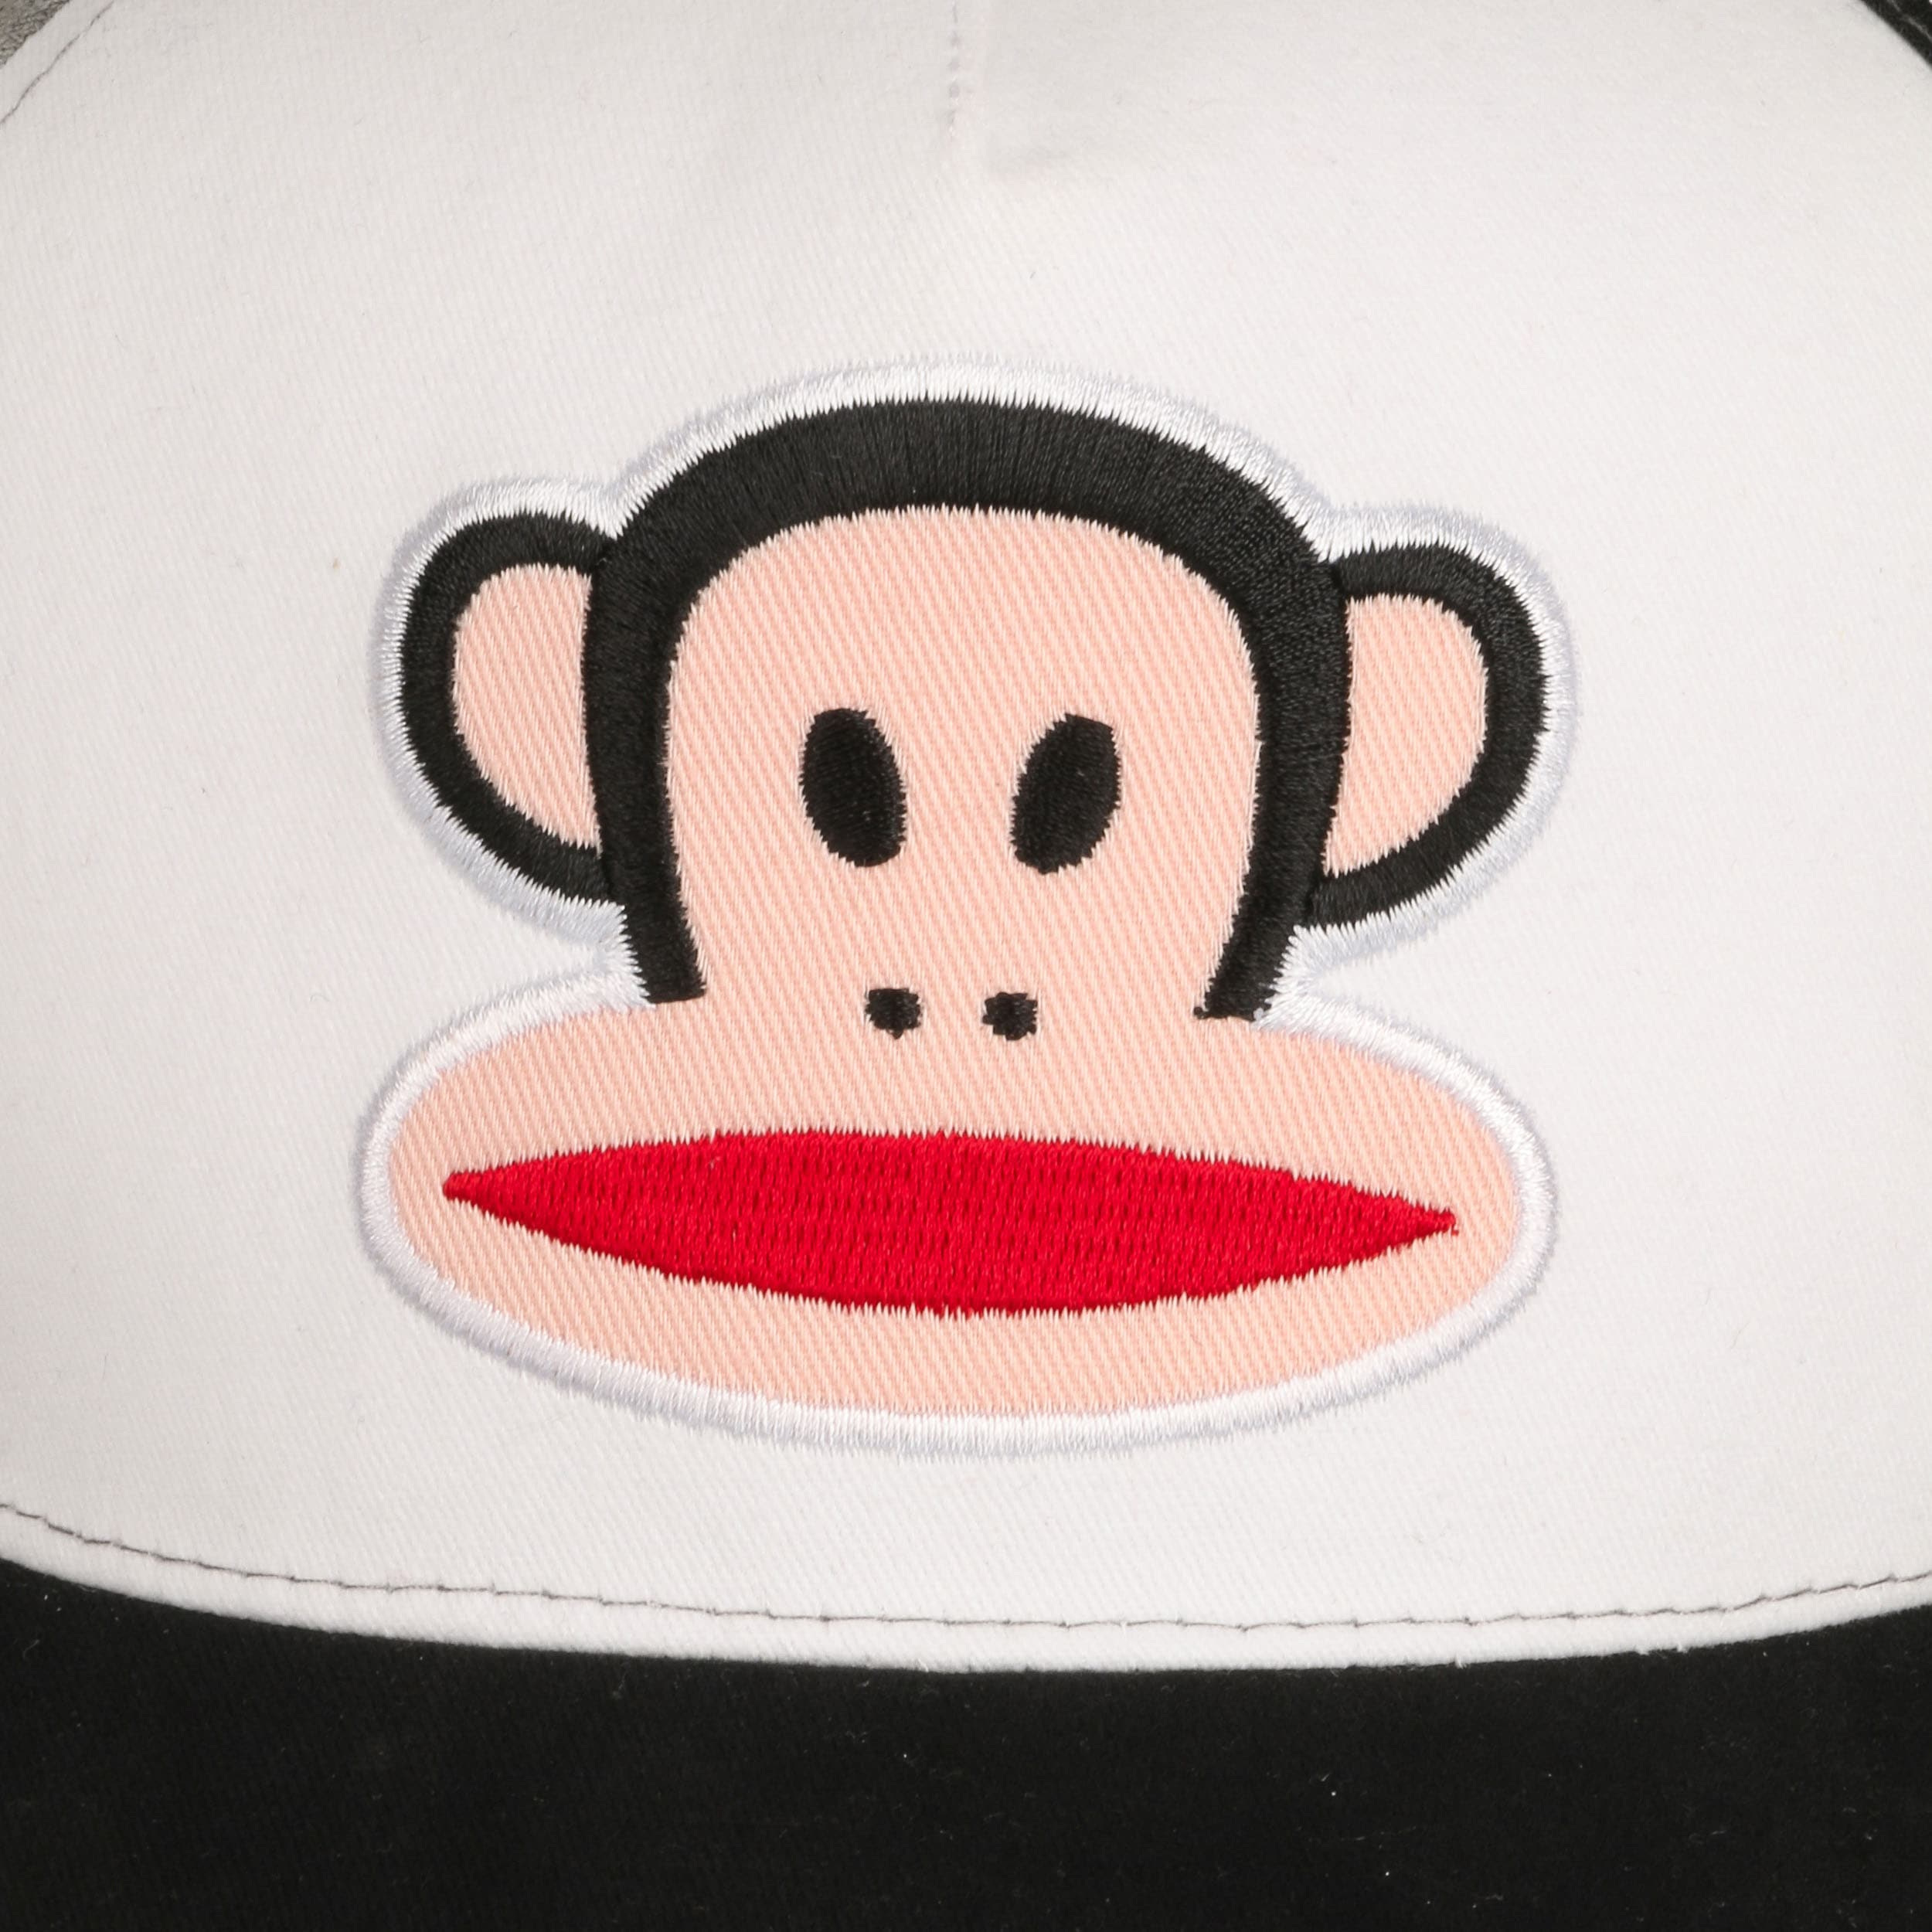 Paul frank big patch flatbrim cap 17 95 for Frank versand